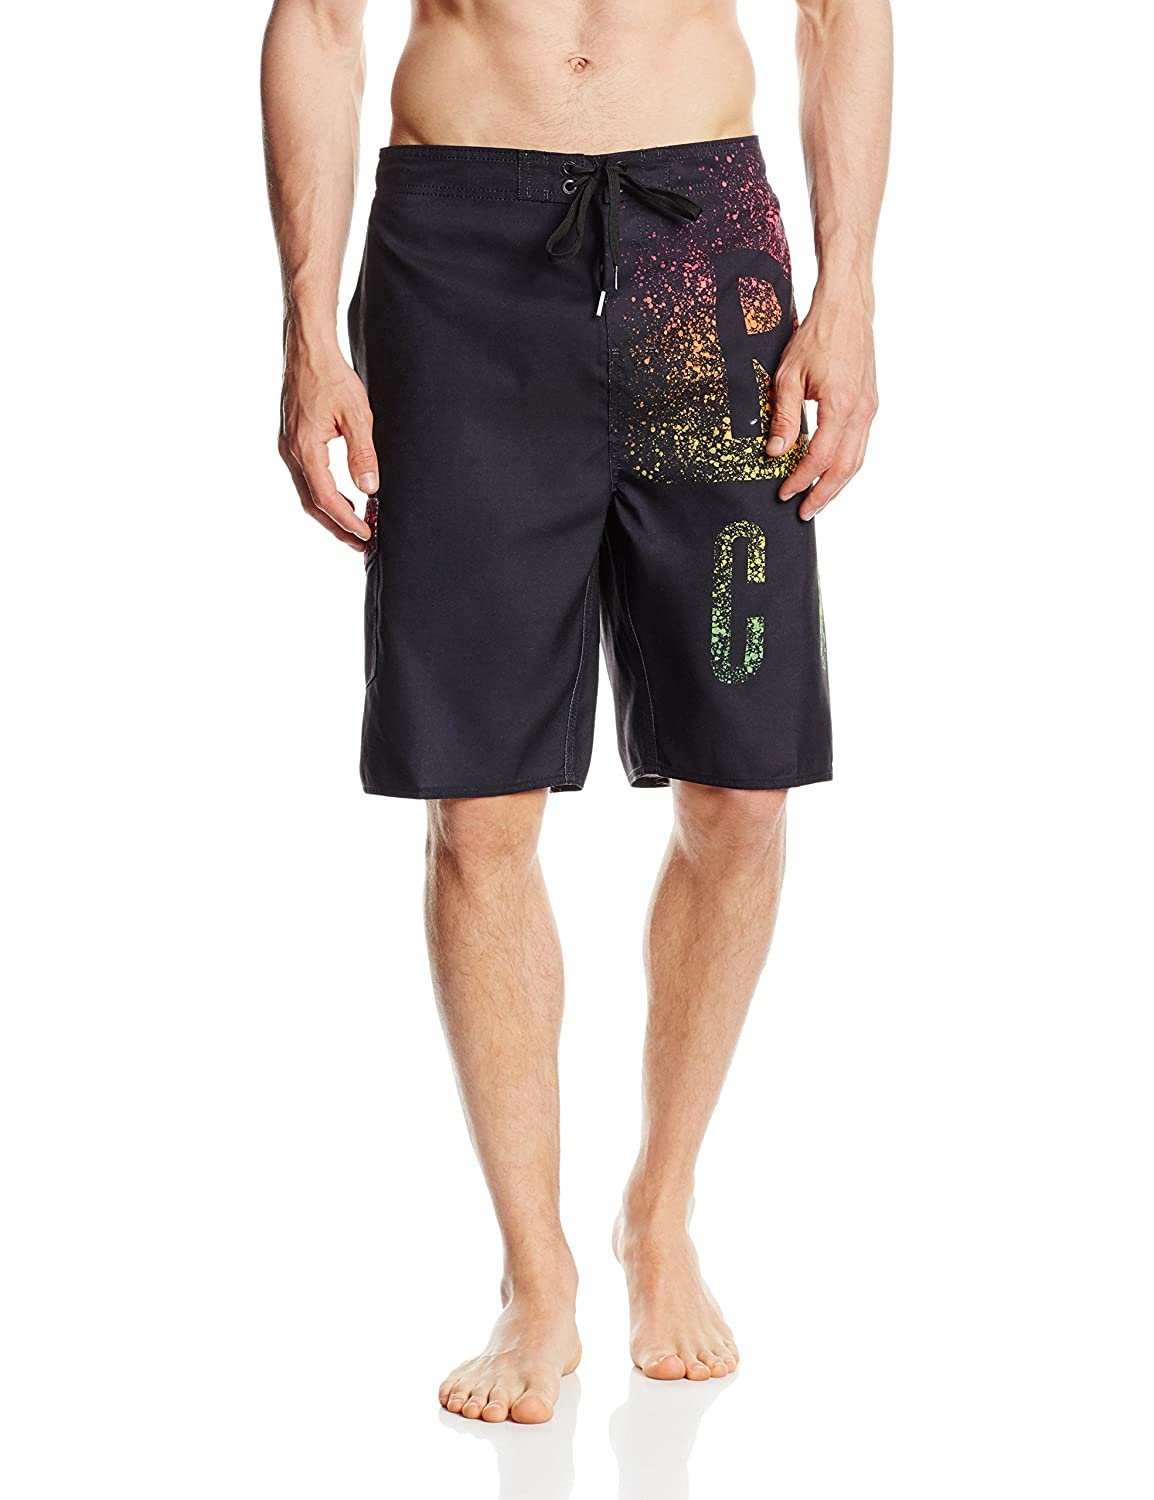 "Rip Curl Men's Overspray S/E Boardshort 21"" Swim Shorts"